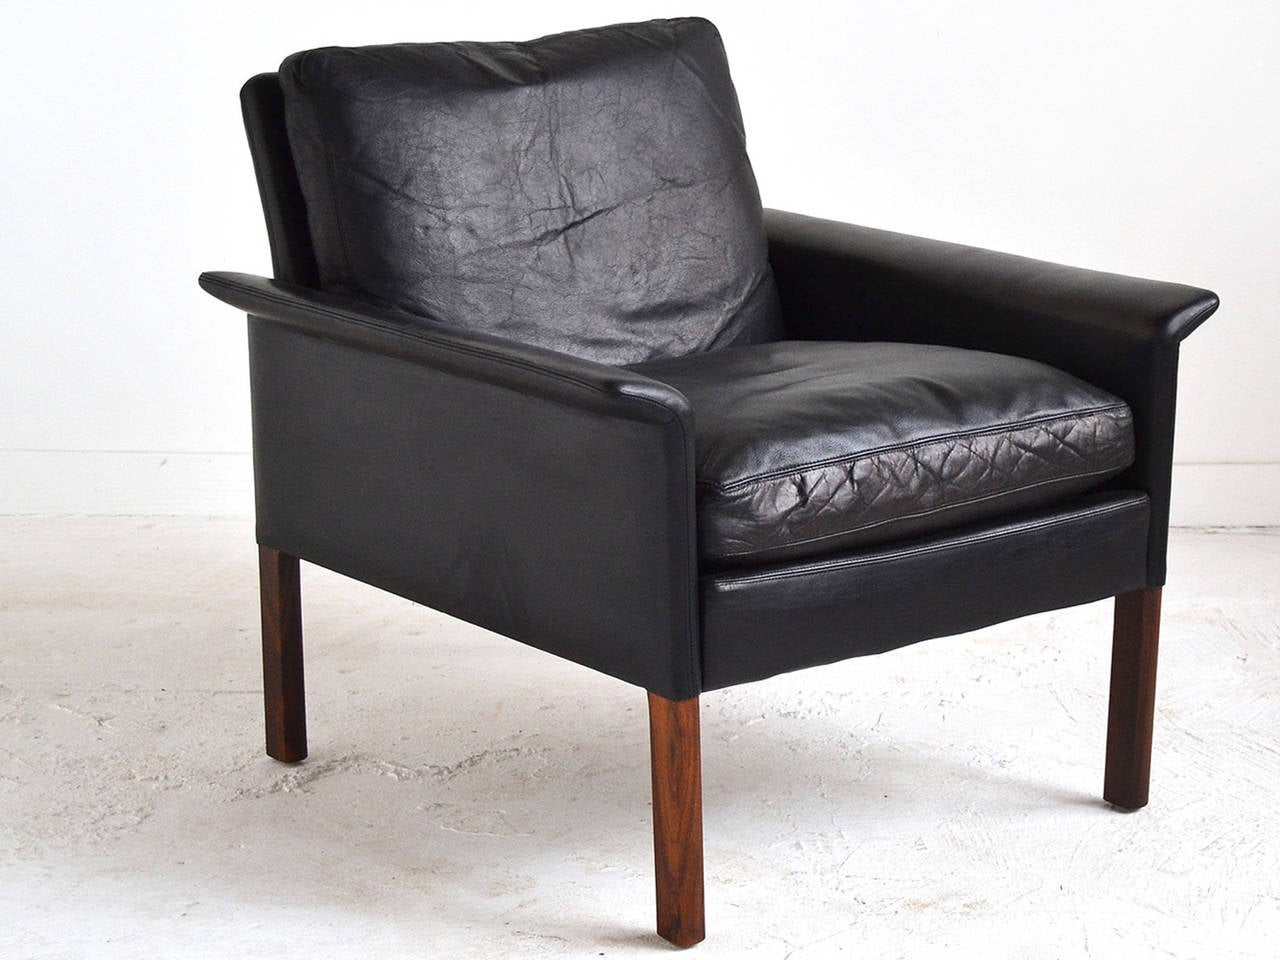 Leather And Rosewood Lounge Chair By Hans Olsen At 1stdibs